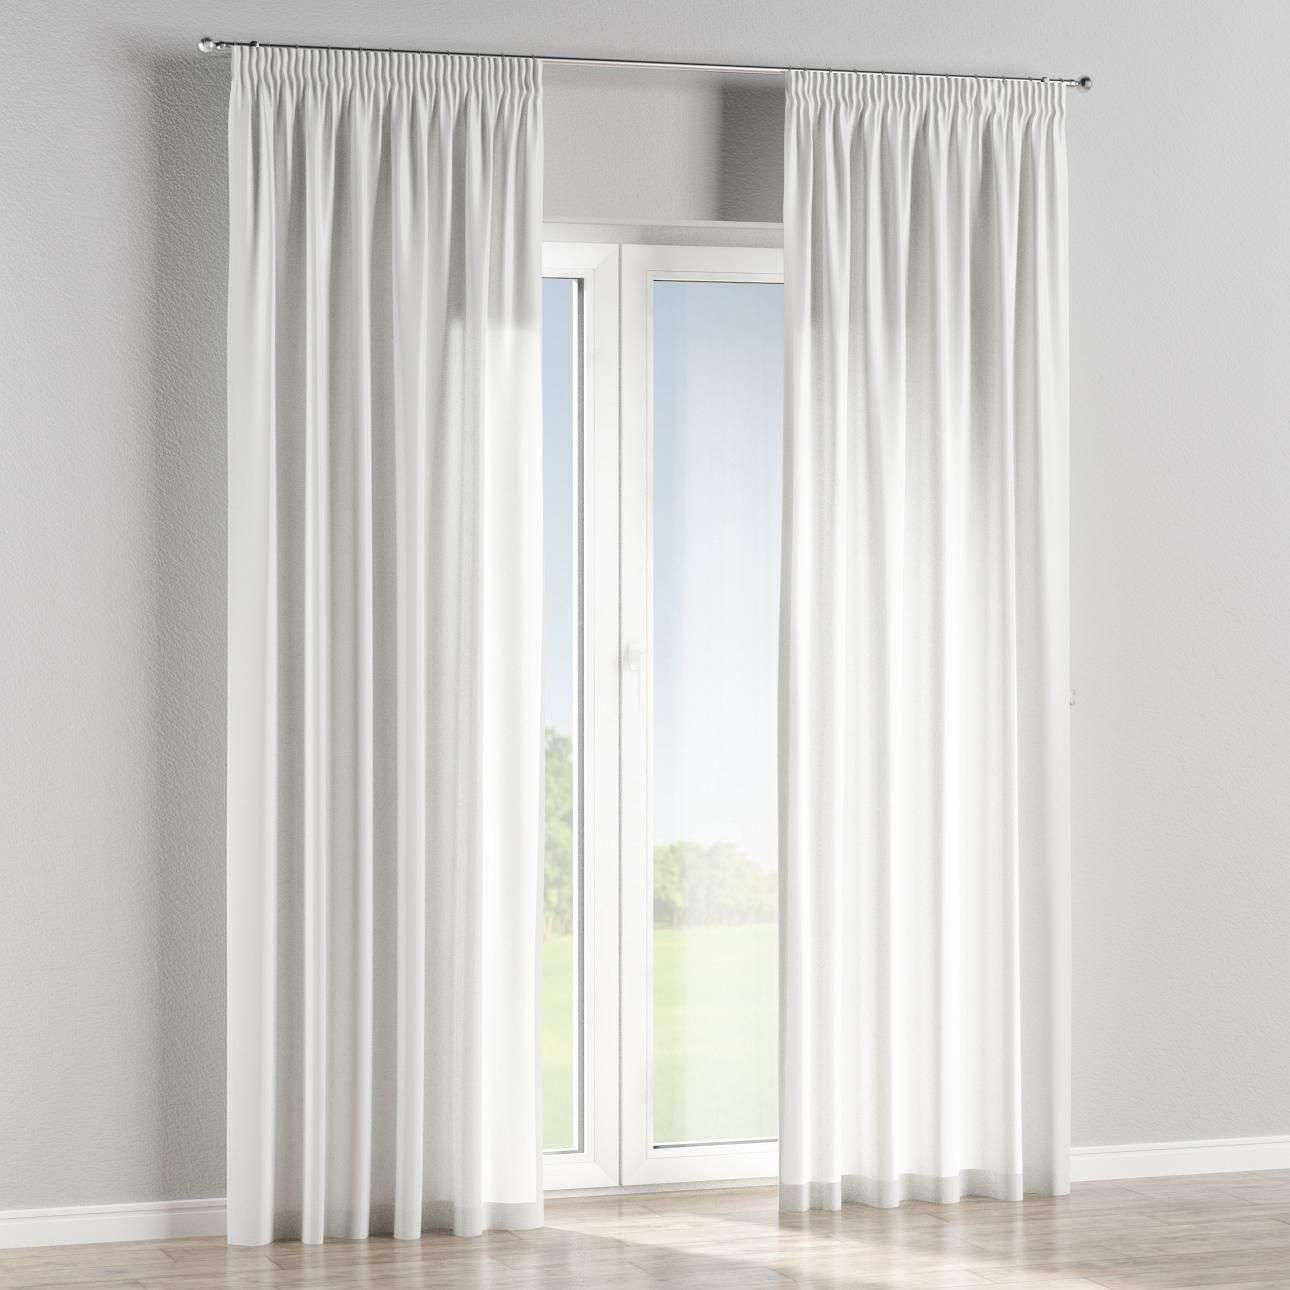 Pencil pleat lined curtains in collection Fleur , fabric: 137-59